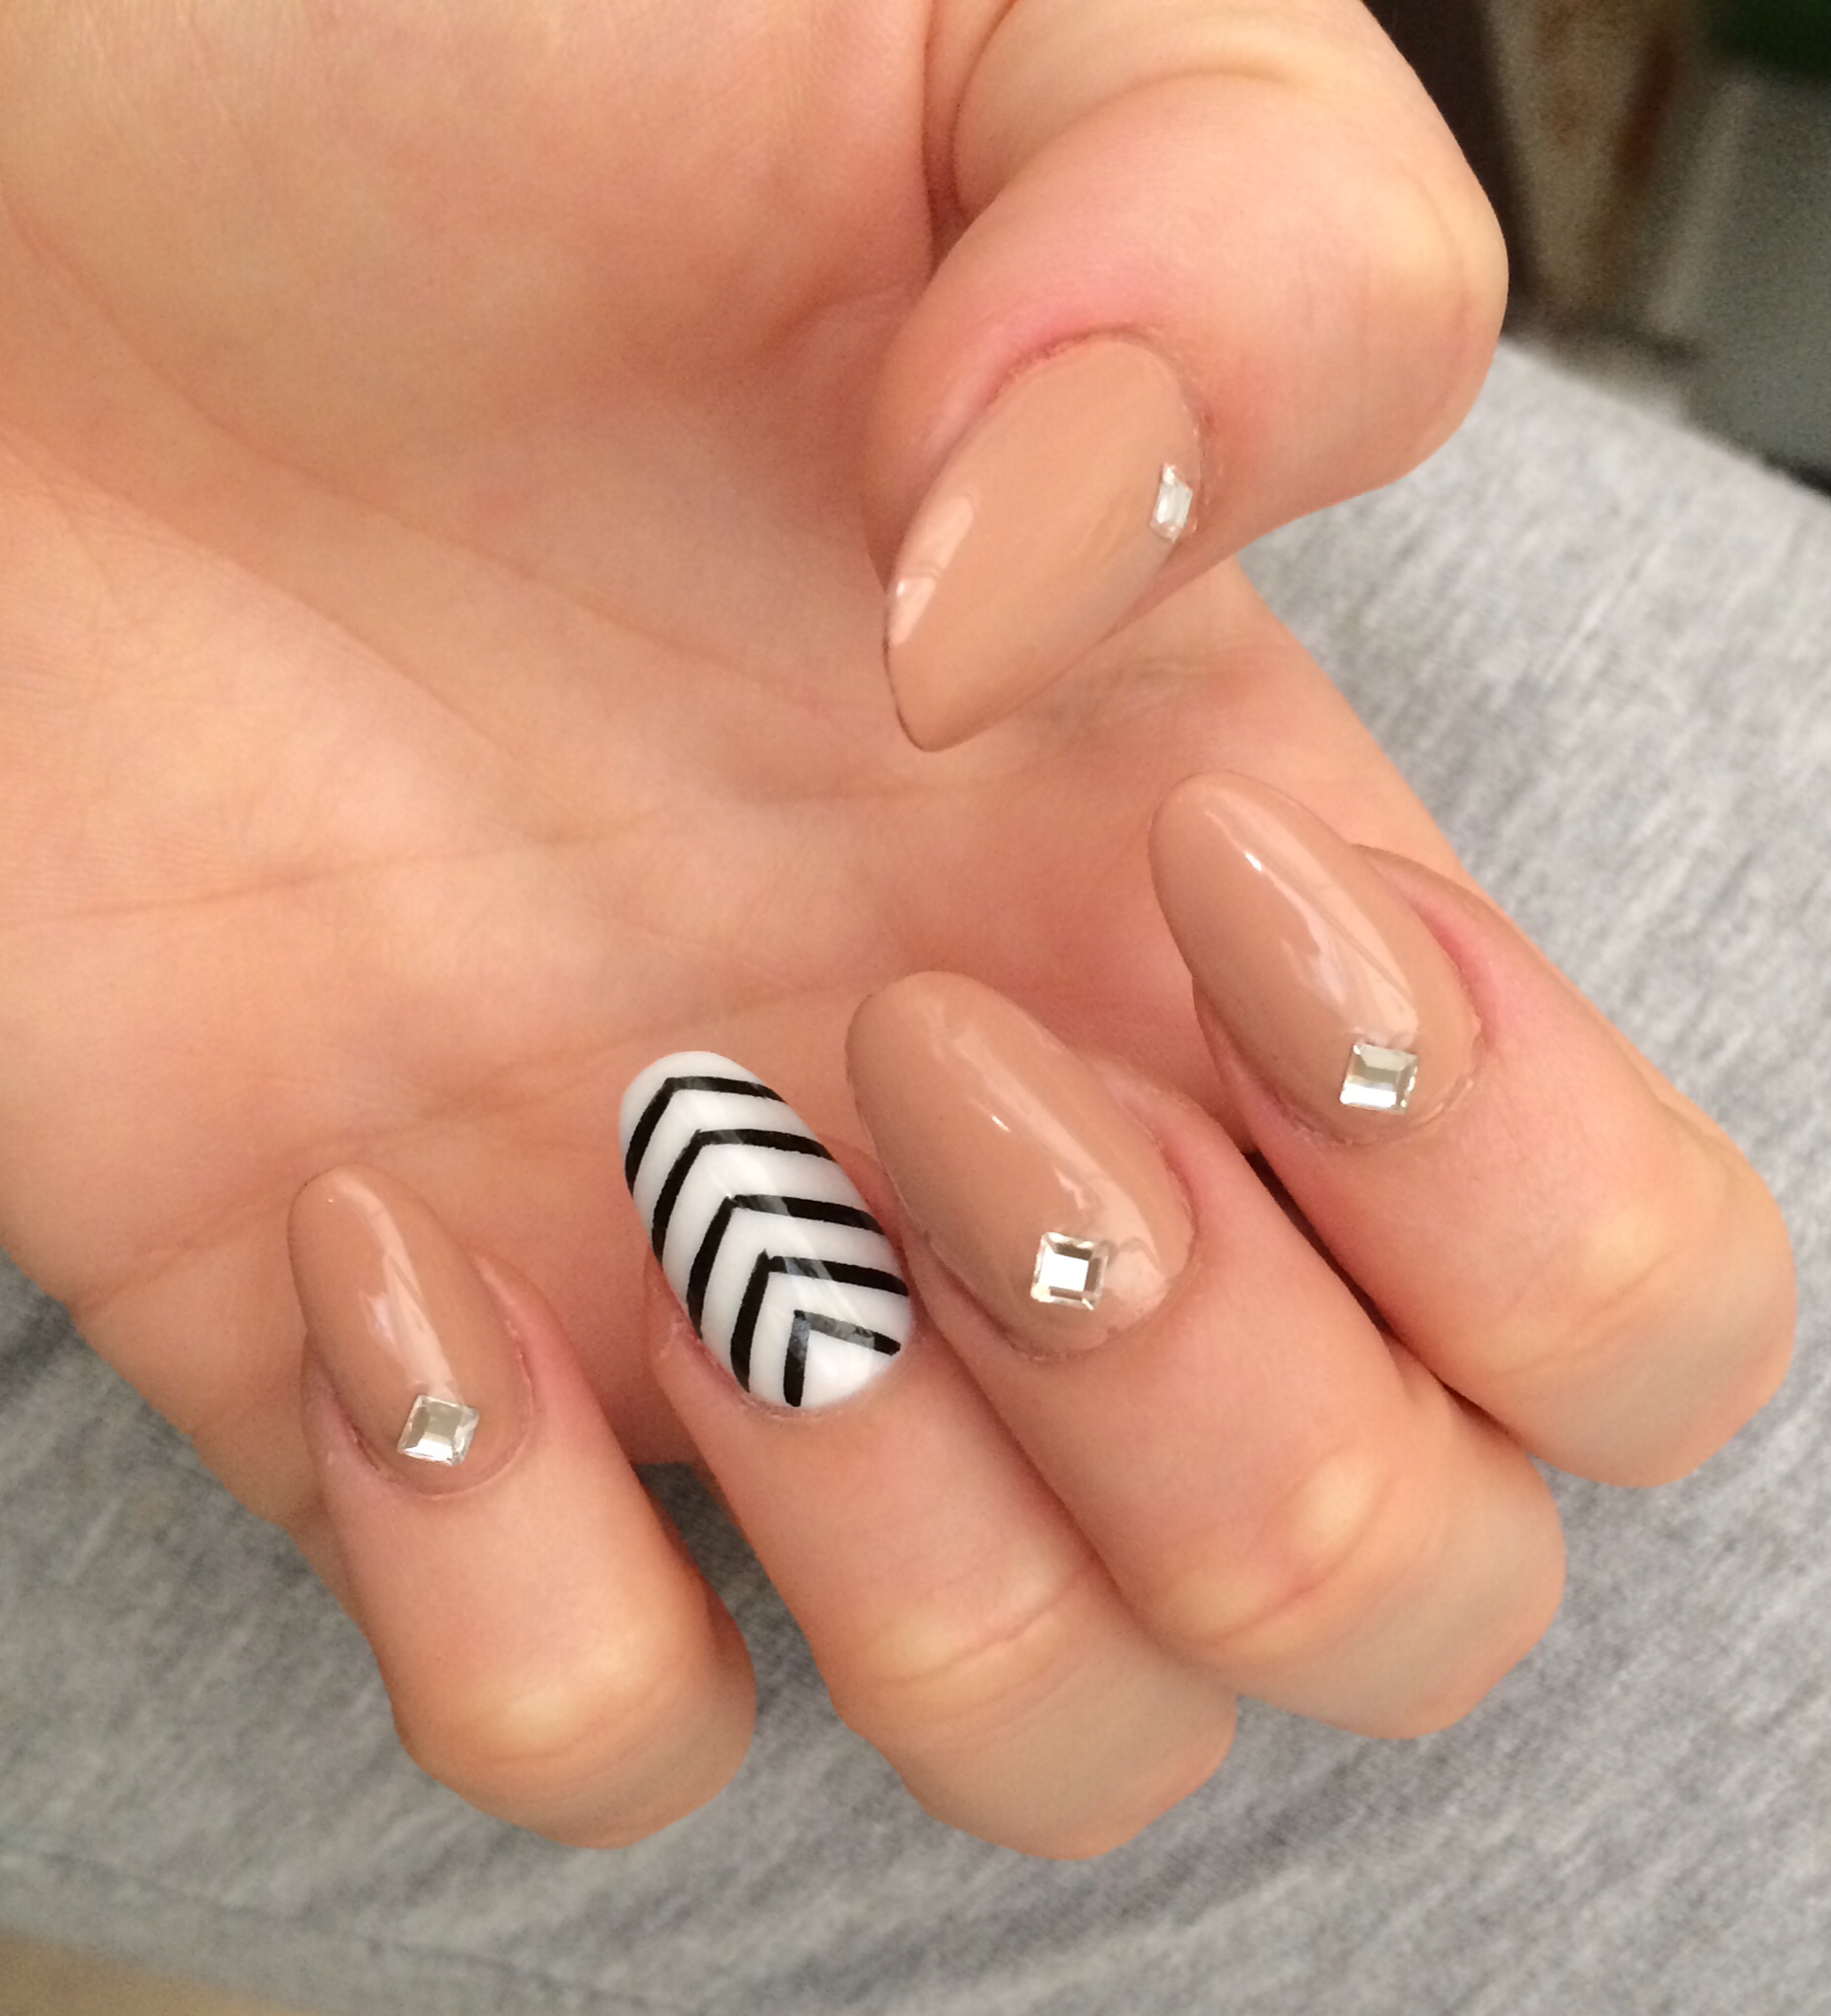 Oval nail shape- How to Pick Best Nail Shape for Fingers- 9 Amazing Nail Shapes Guide (1)